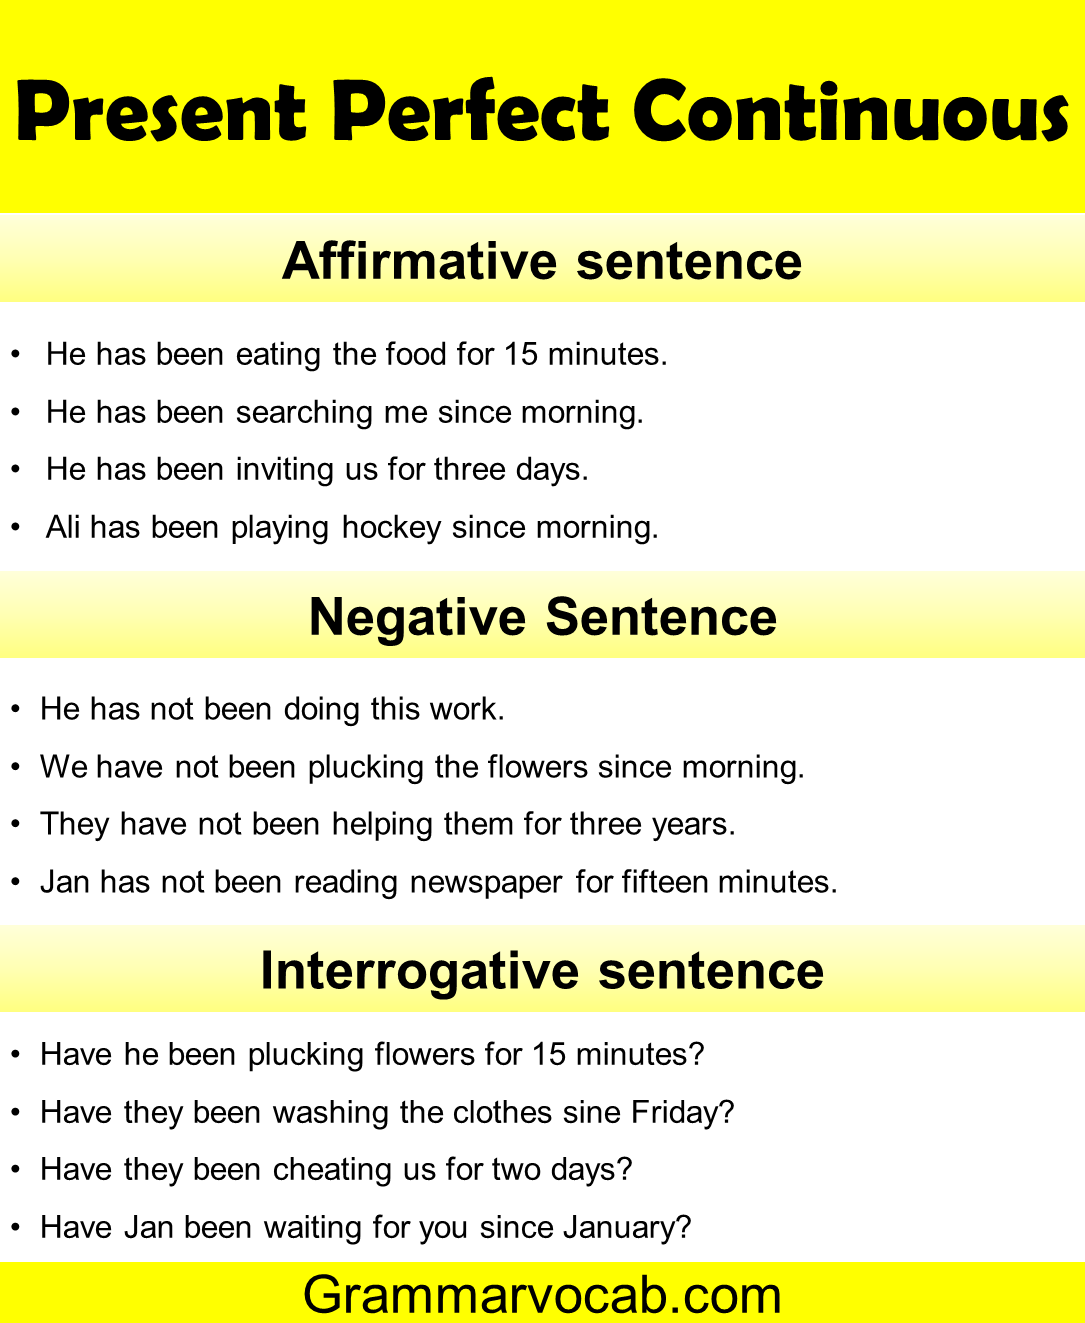 Present Perfect Continuous Examples